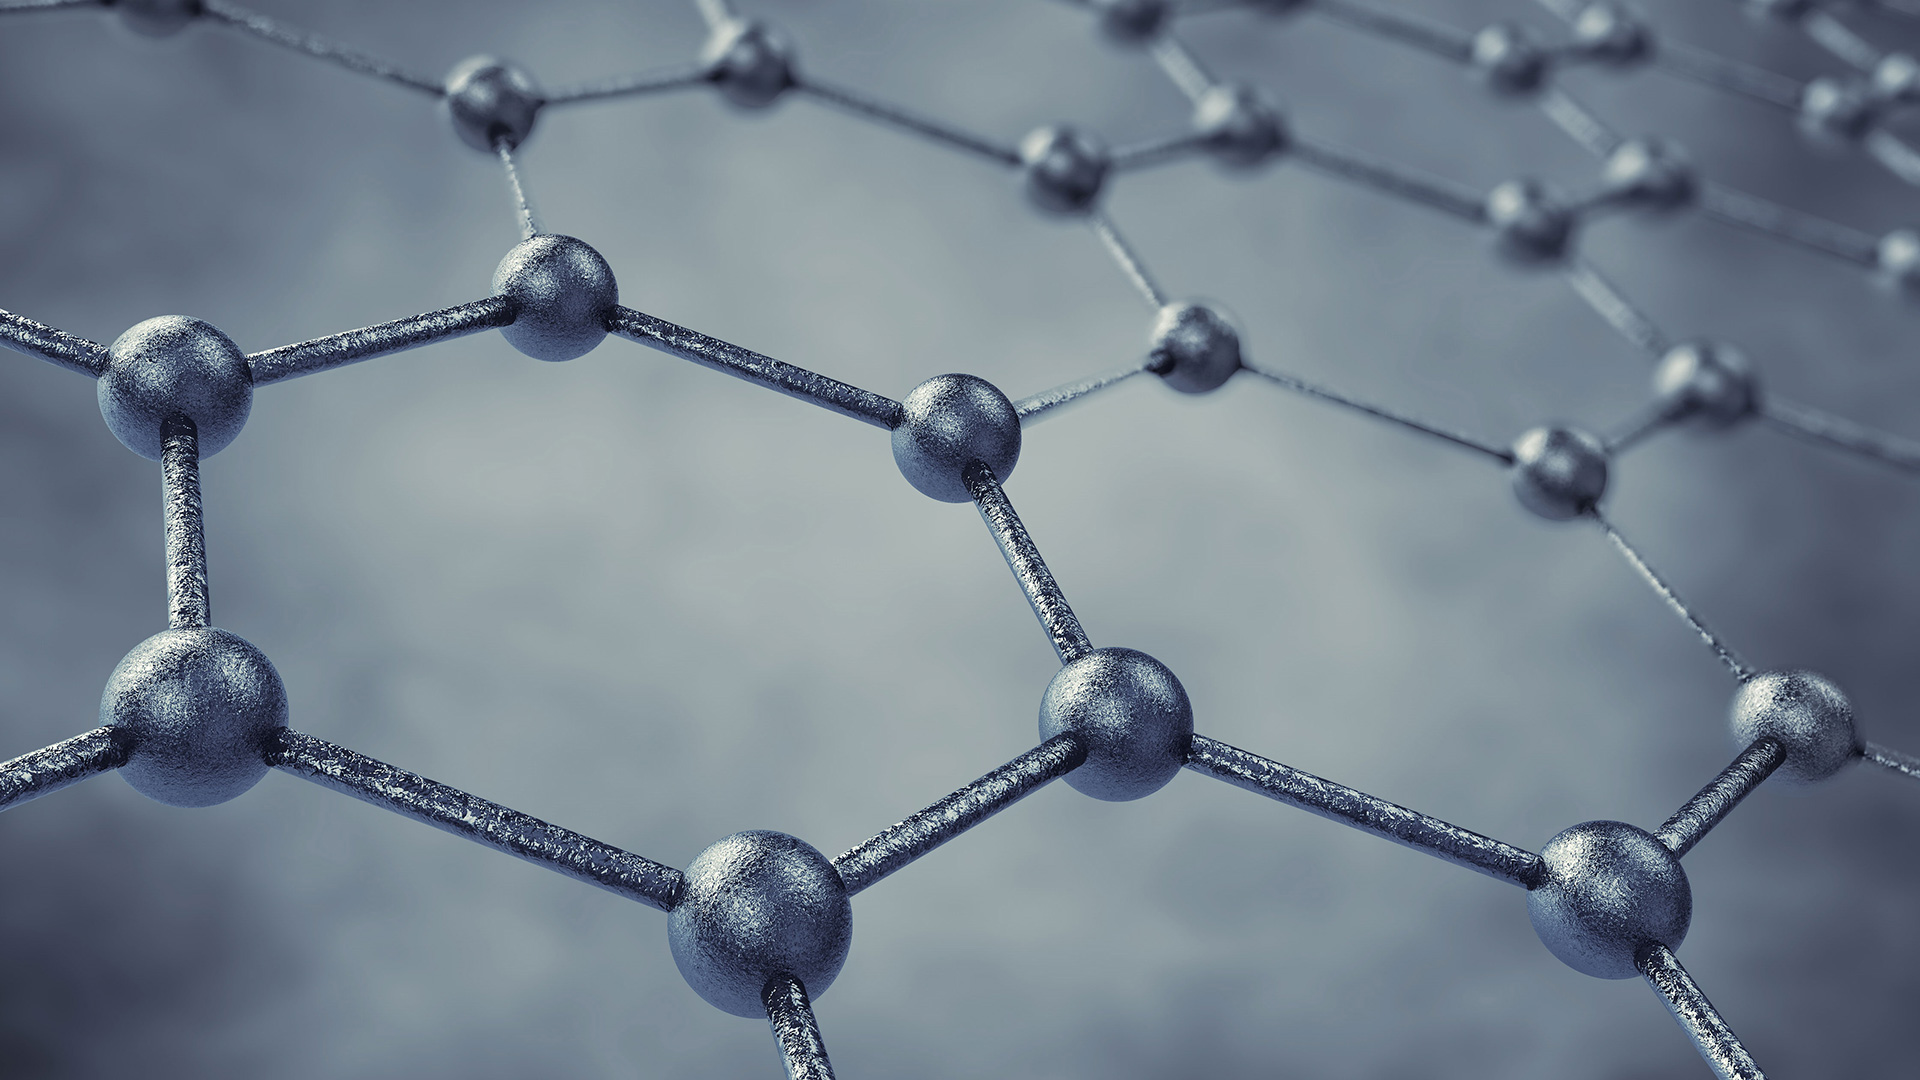 Graphene's hexagonal structure